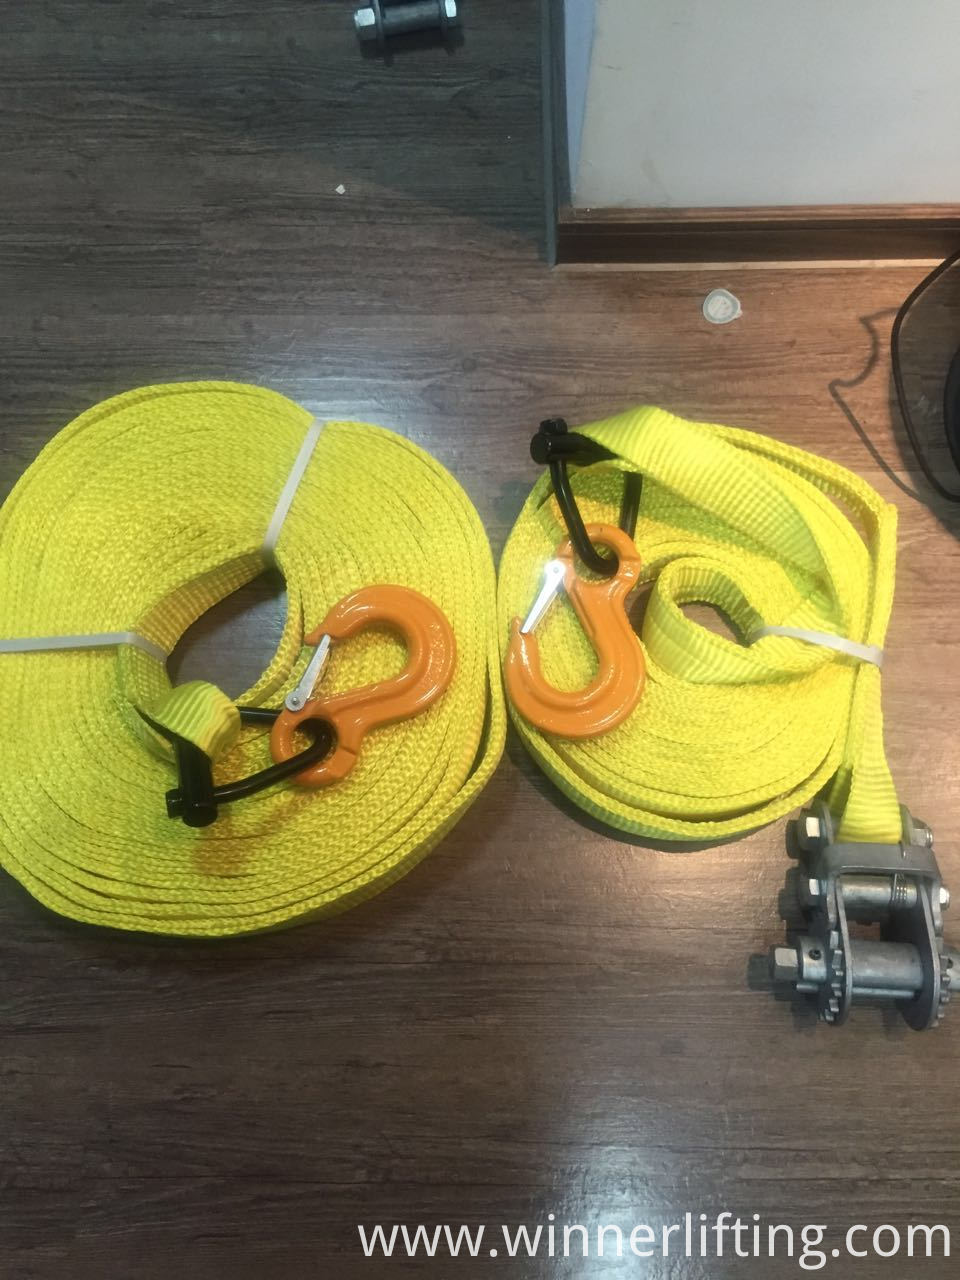 20T Heavy duty Ratchet straps